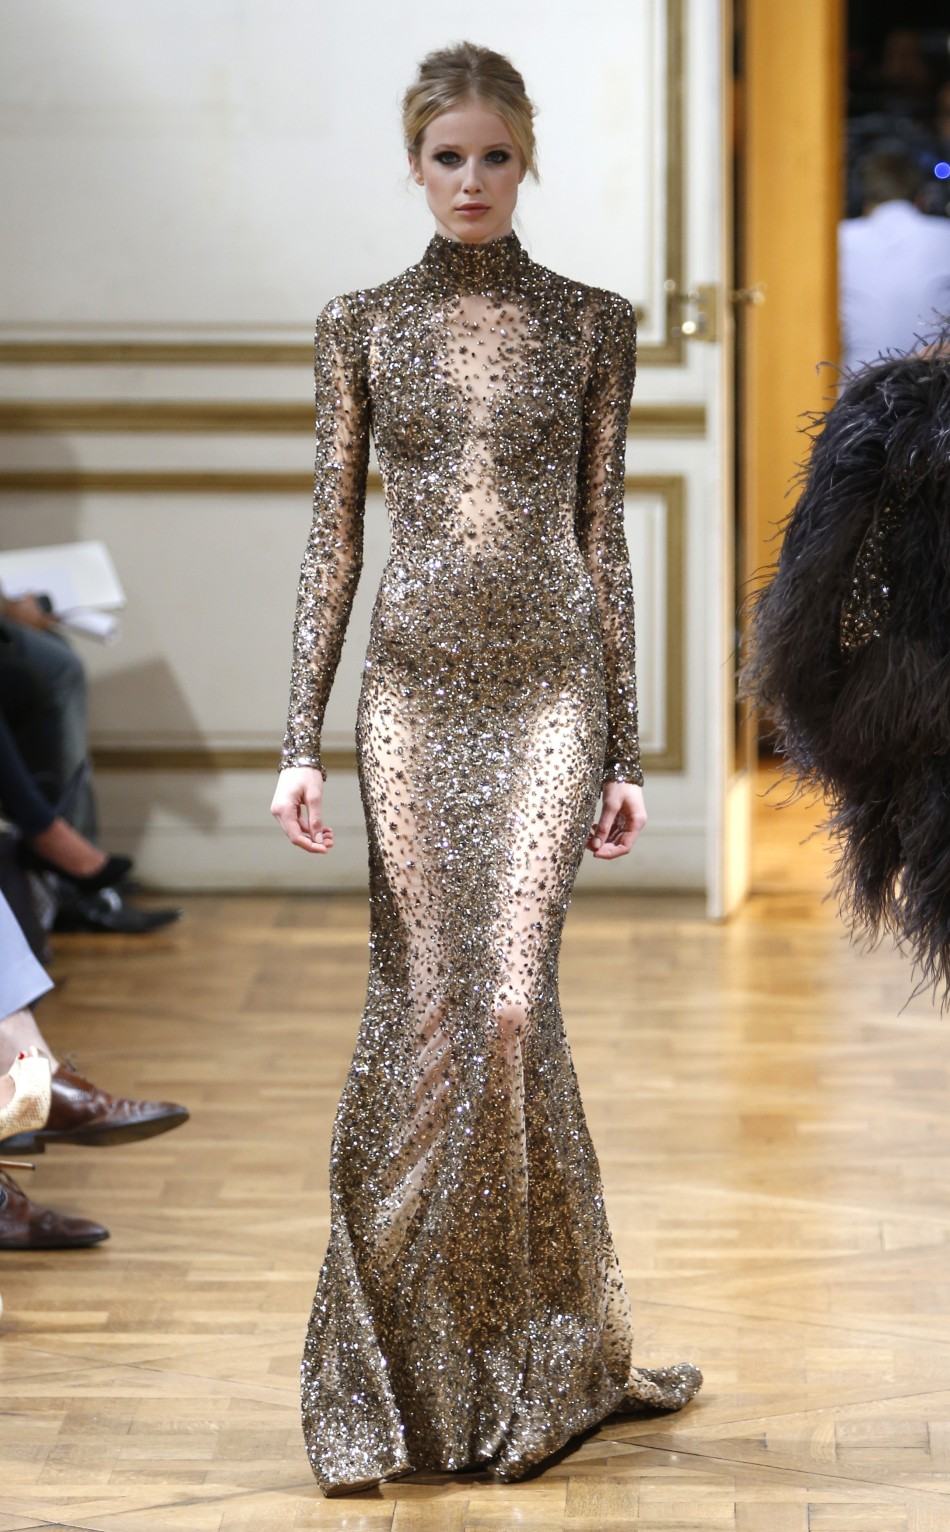 A body-fit silver gown with sequins, semi-precious stones and intricate embroidery